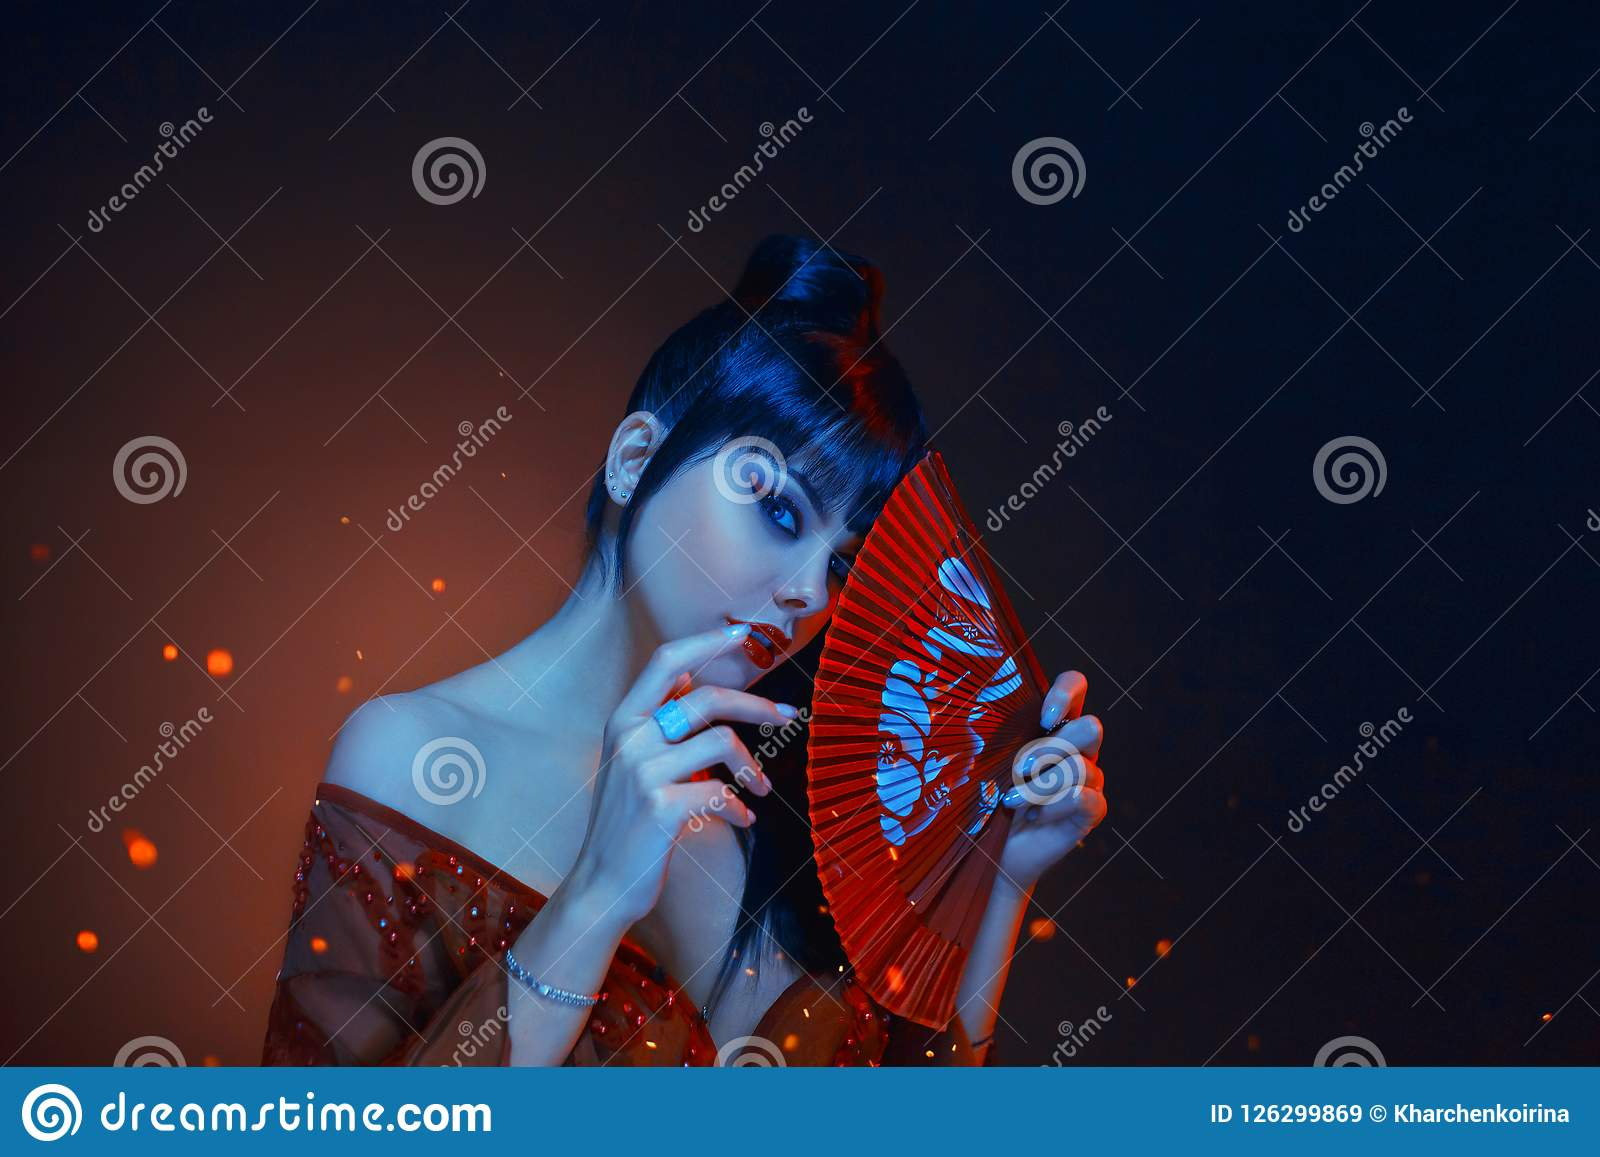 A beautiful geisha with blue long hair and a bang is looking in soul. red make up, lips, long dress with open shoders